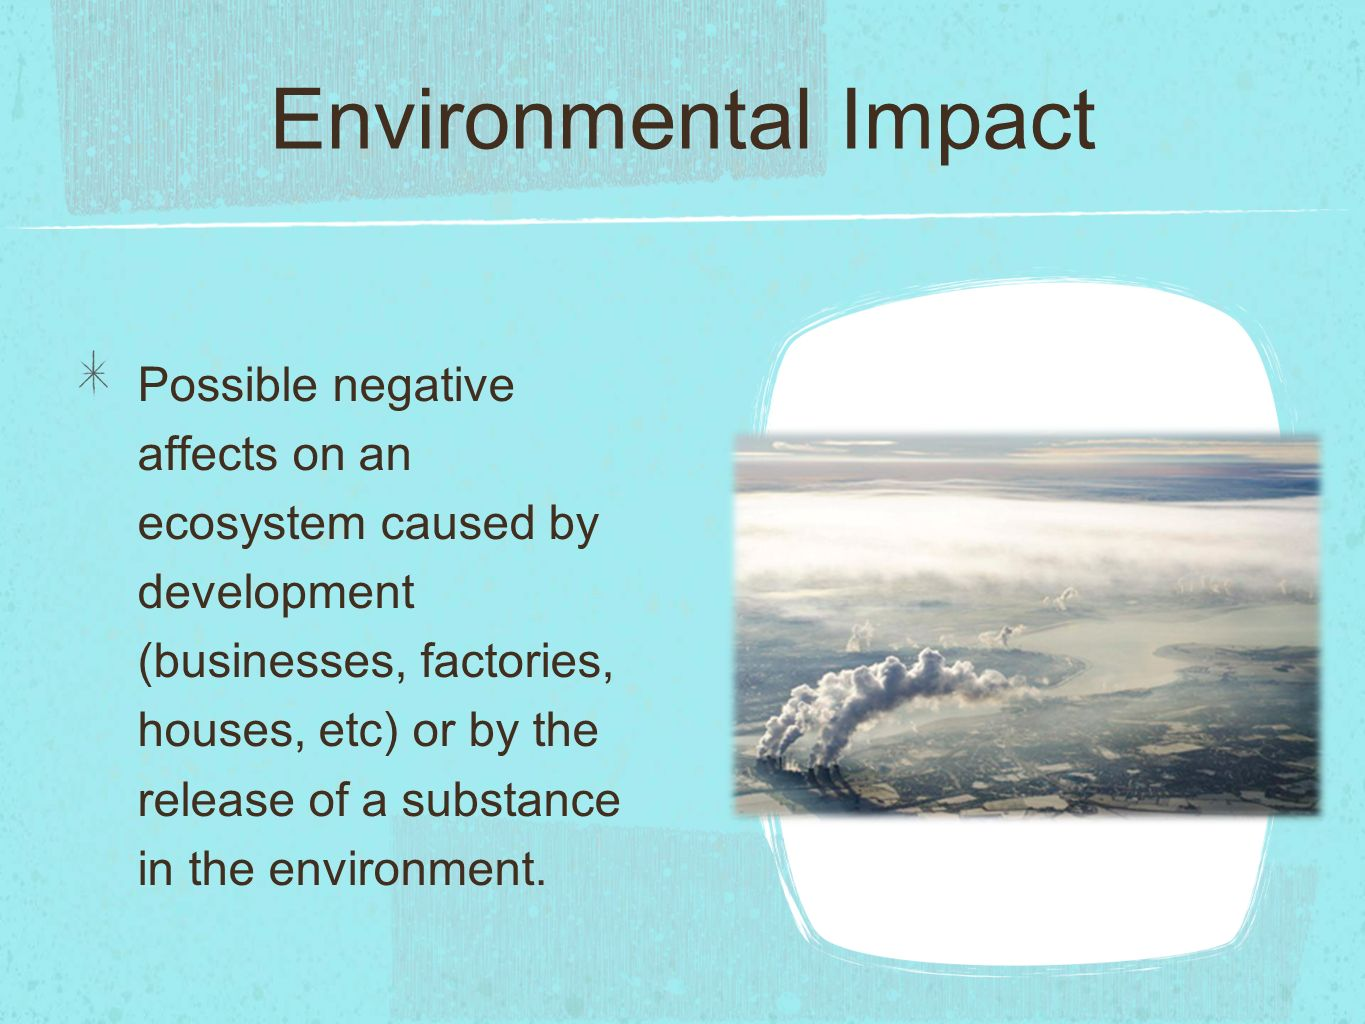 Environmental Impact Possible negative affects on an ecosystem caused by development (businesses, factories, houses, etc) or by the release of a substance in the environment.